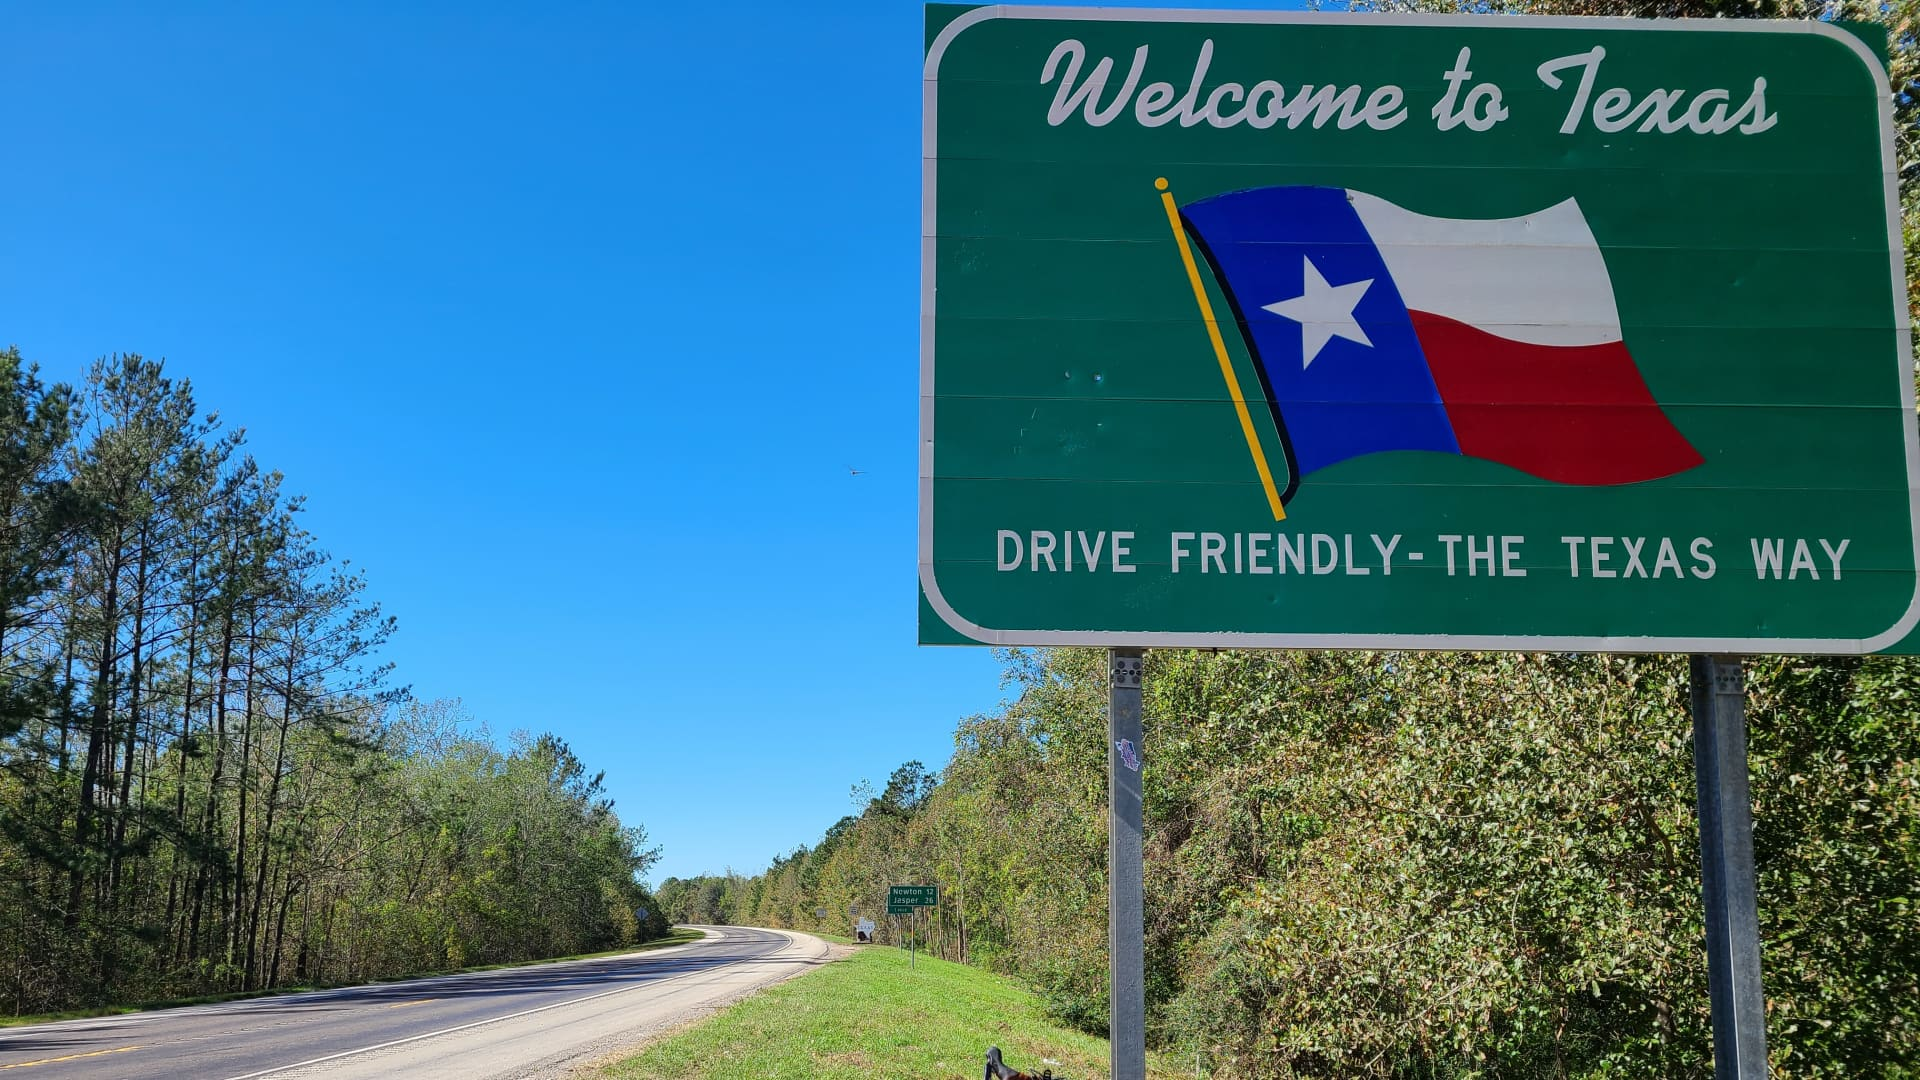 Andrew reaches the Lone Star State